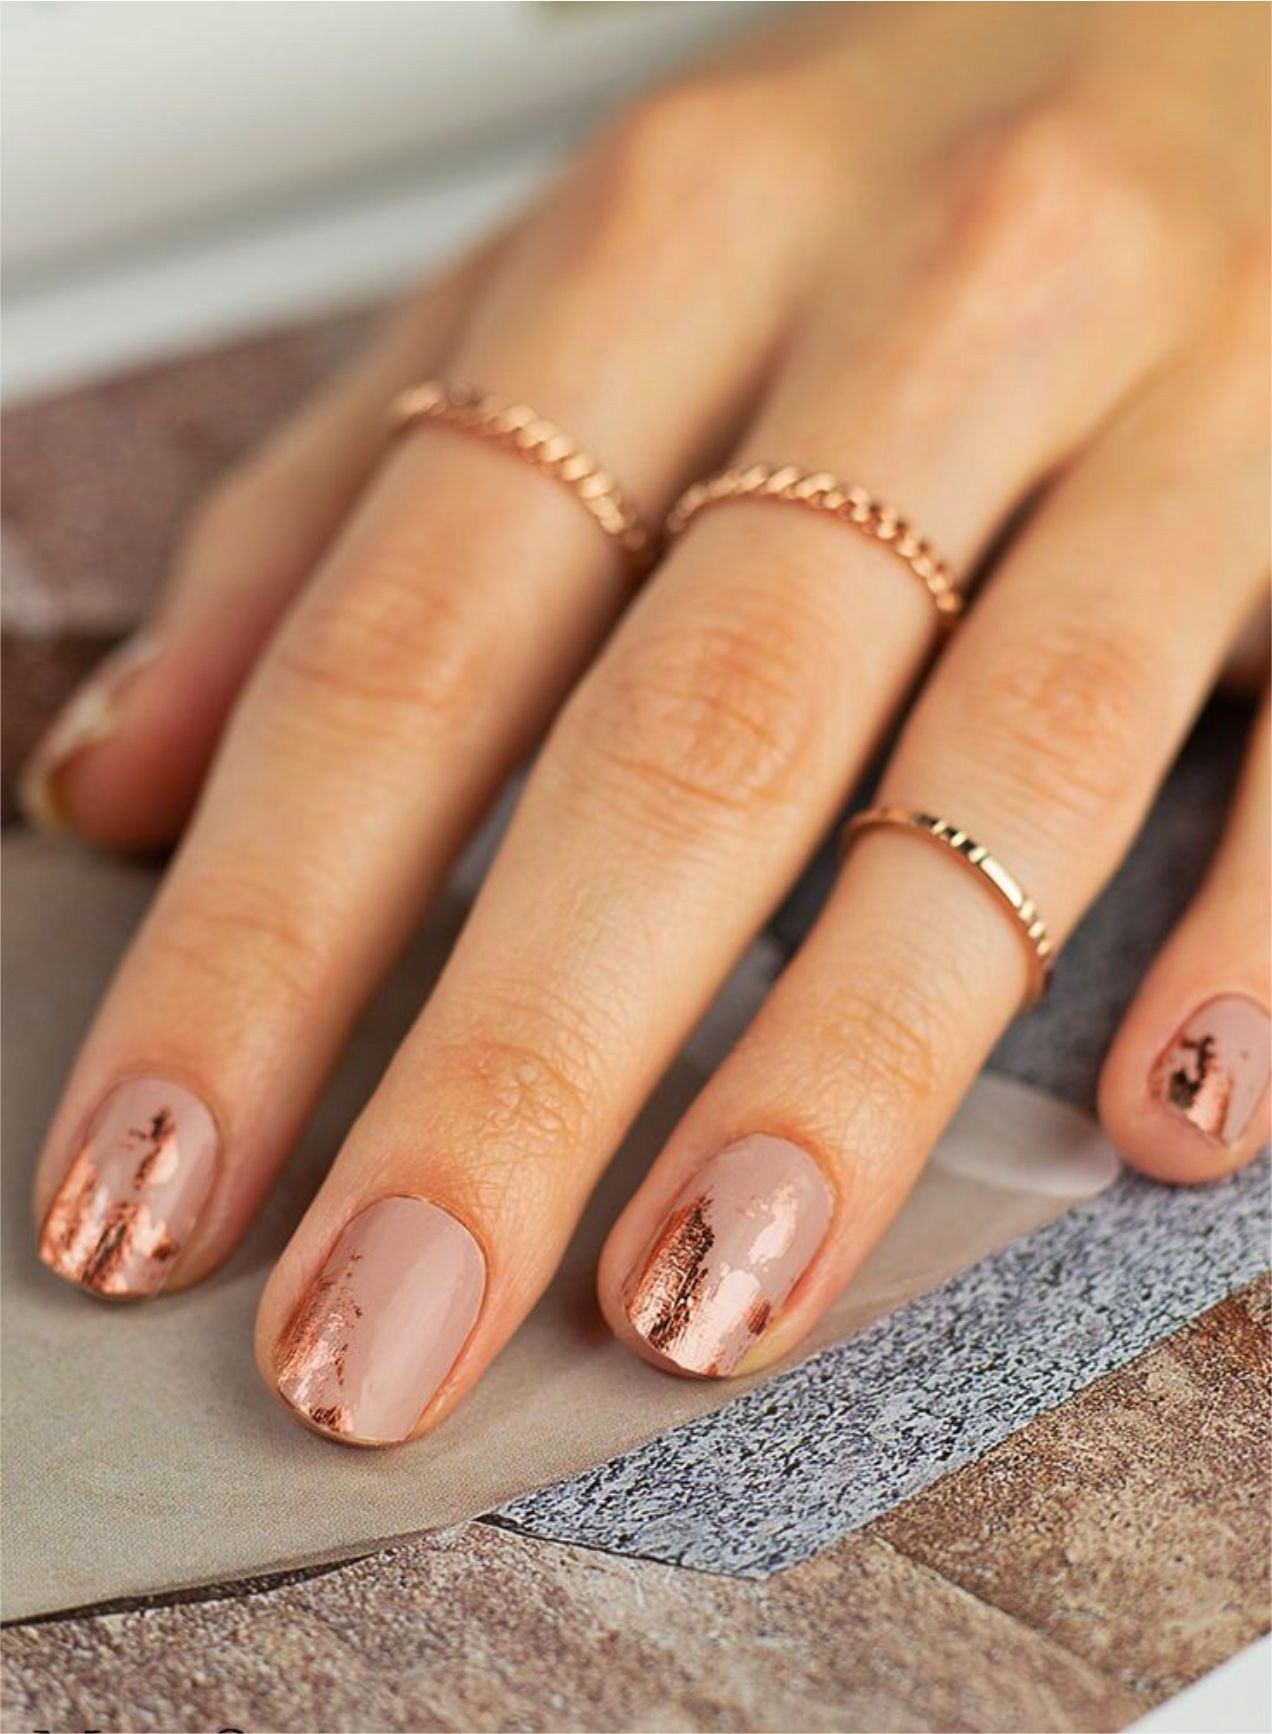 45 Classy Spring Nail Color Designs For Your Exceptional Style In 2020 Nehty